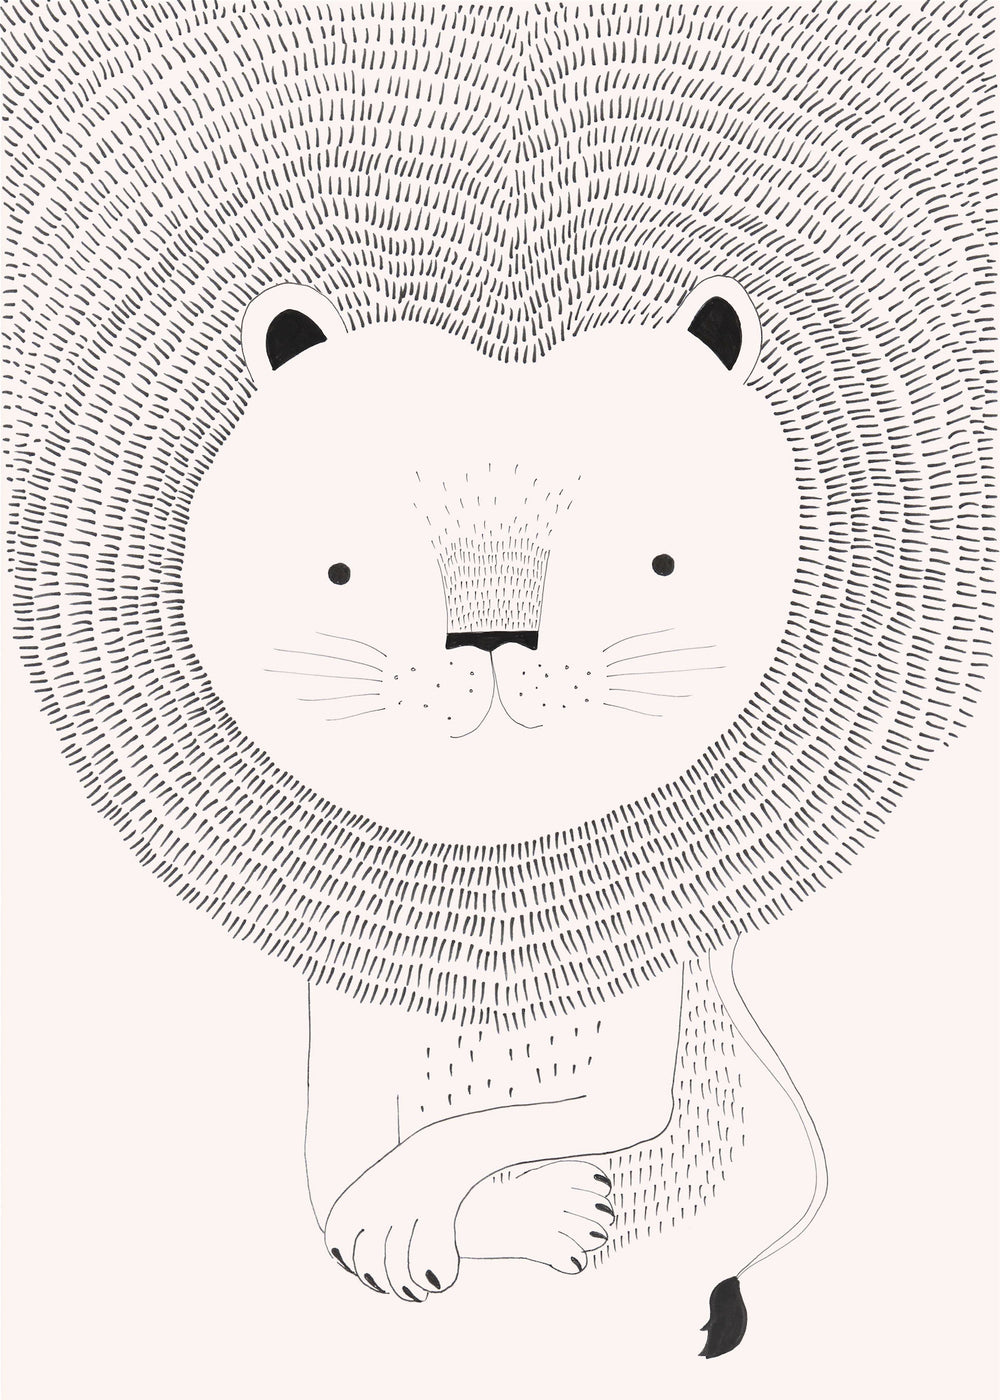 Lion Heart Children's Wallpaper Mural in Dusky Pink, White & Black - Your 4 Walls